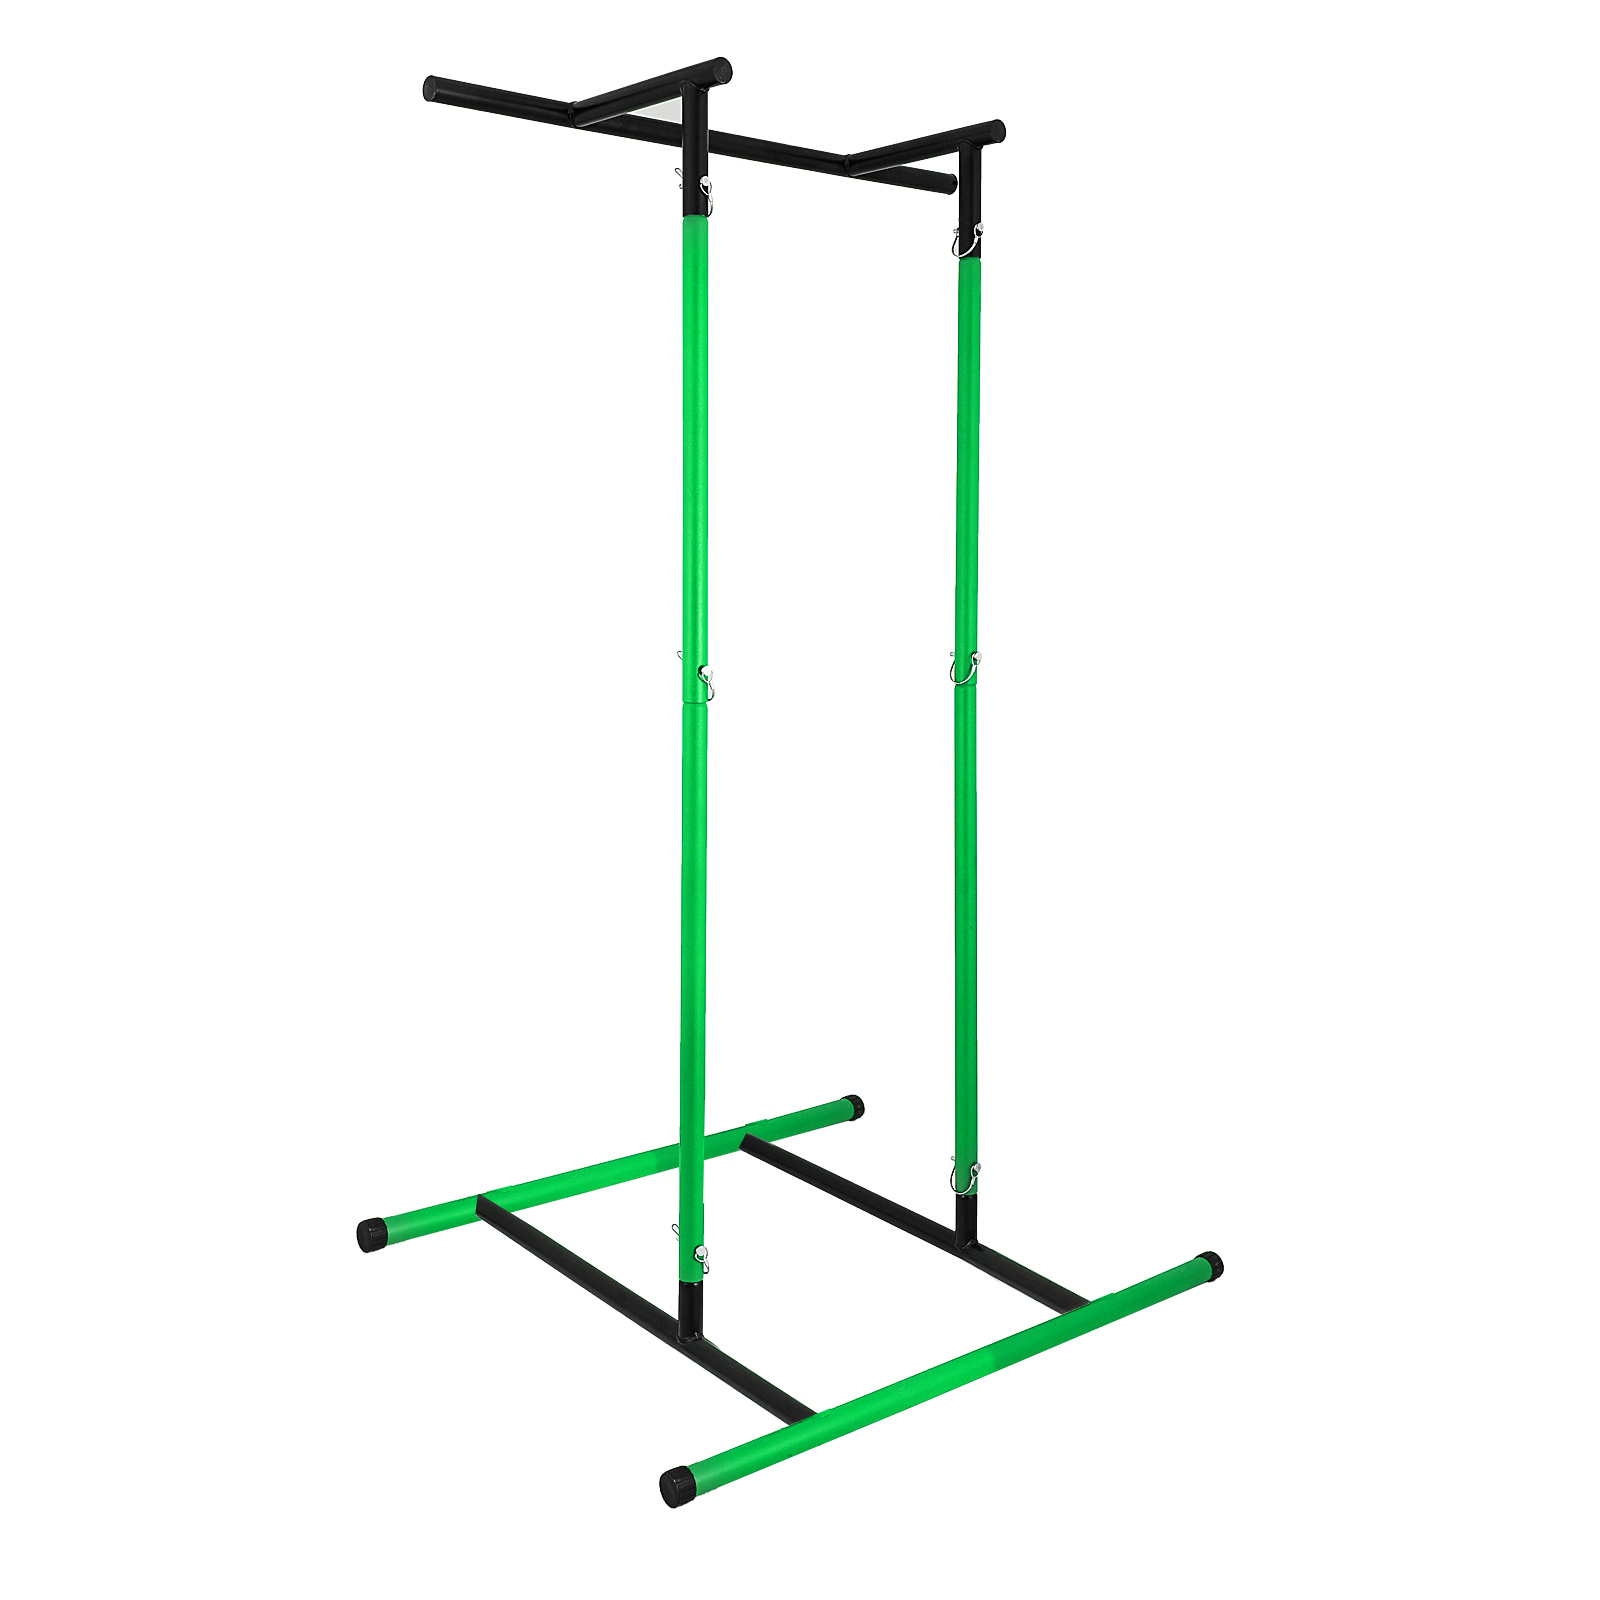 Portable-Power-Tower-for-Home-Gym-Workout-With-Dip-Station-And-Chin-Pull-Up-Bar thumbnail 53